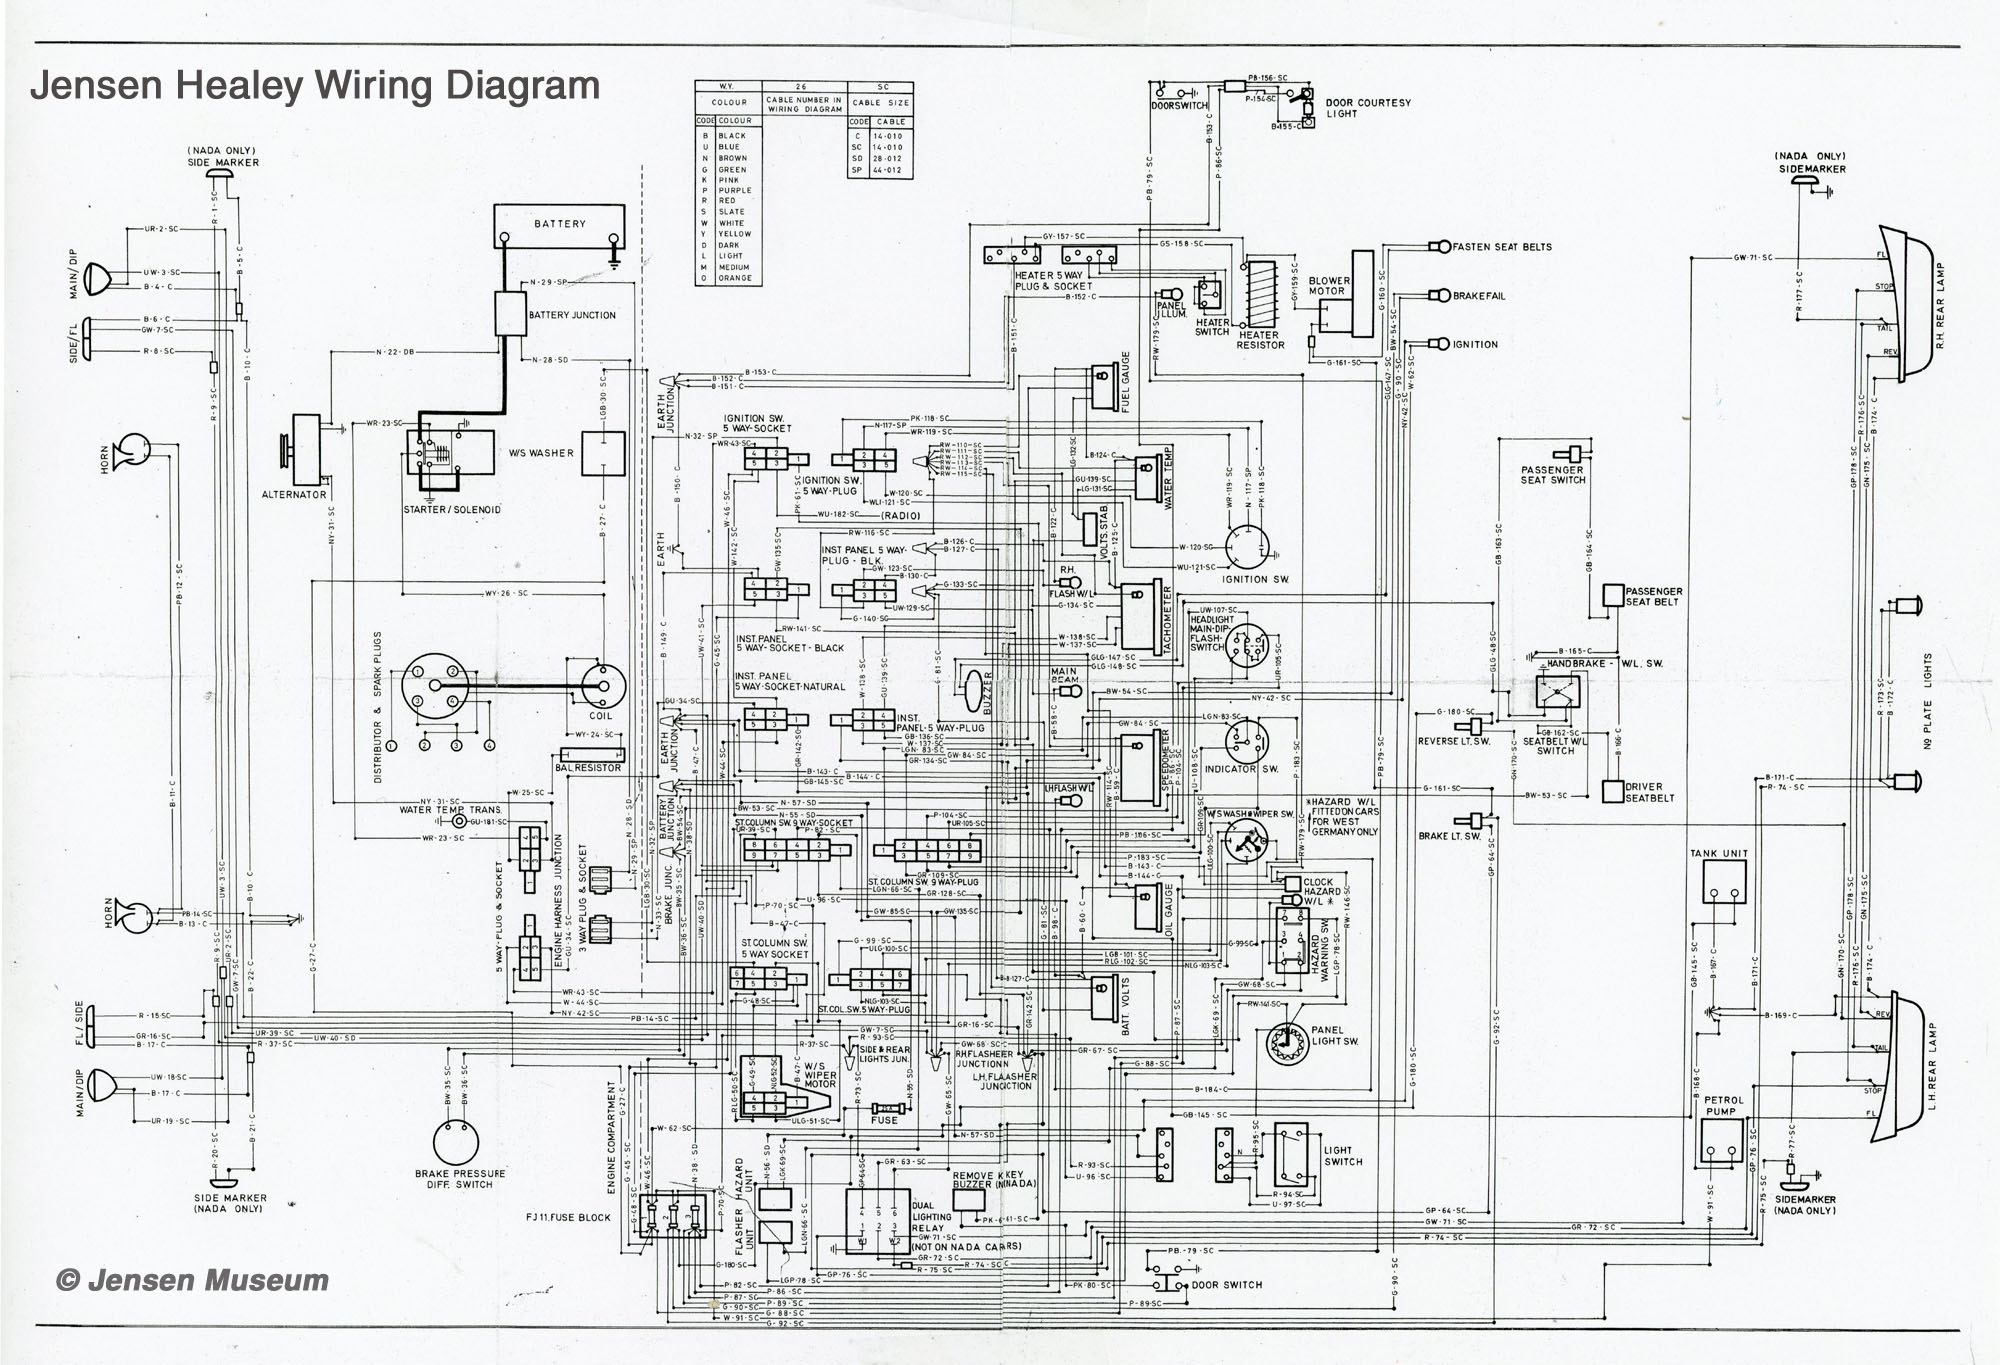 jensen-healey wiring diagram - the jensen museum jensen vm9324 wiring diagram